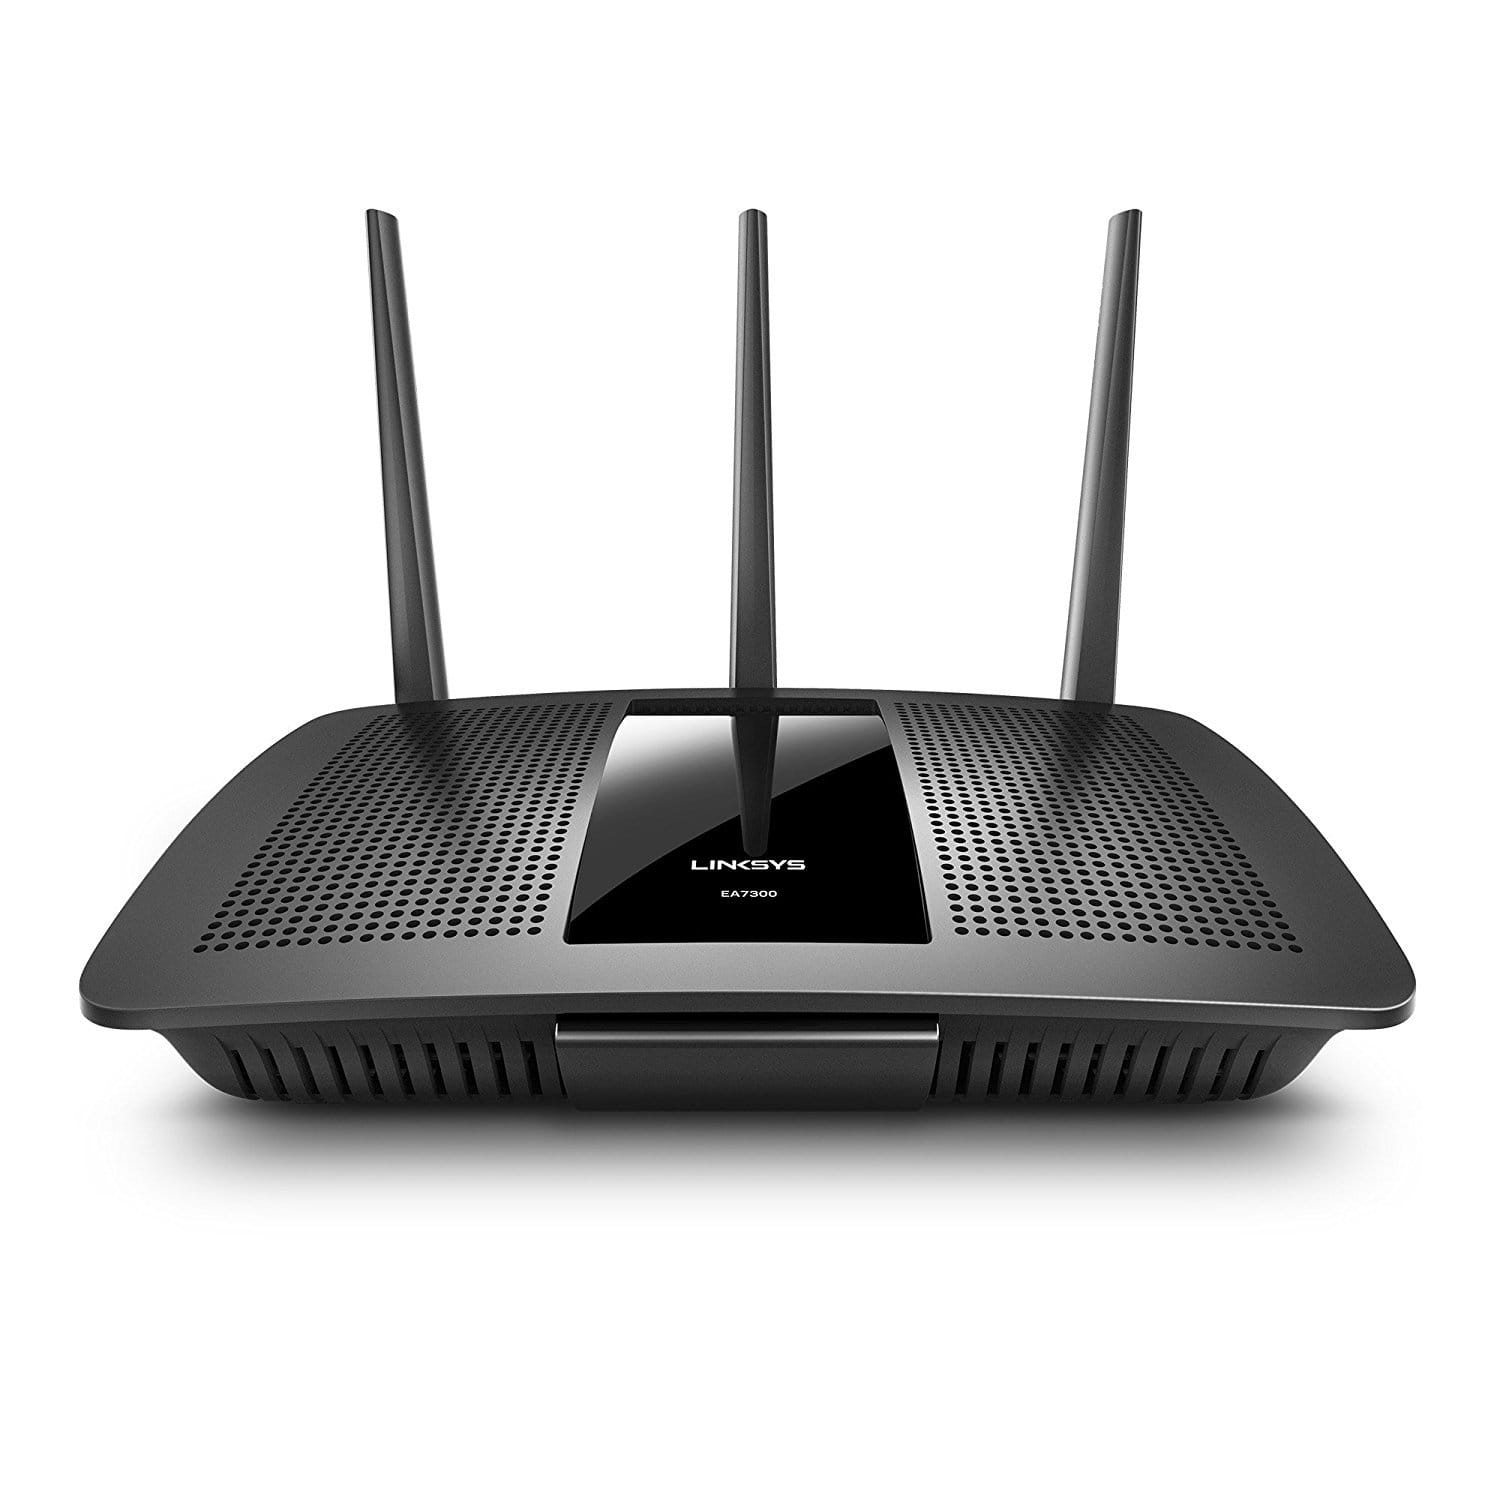 Linksys EA7300-RM AC1750 Dual-Band Smart Wireless Router with MU-MIMO,*RFB*  $24.96 @Amazon